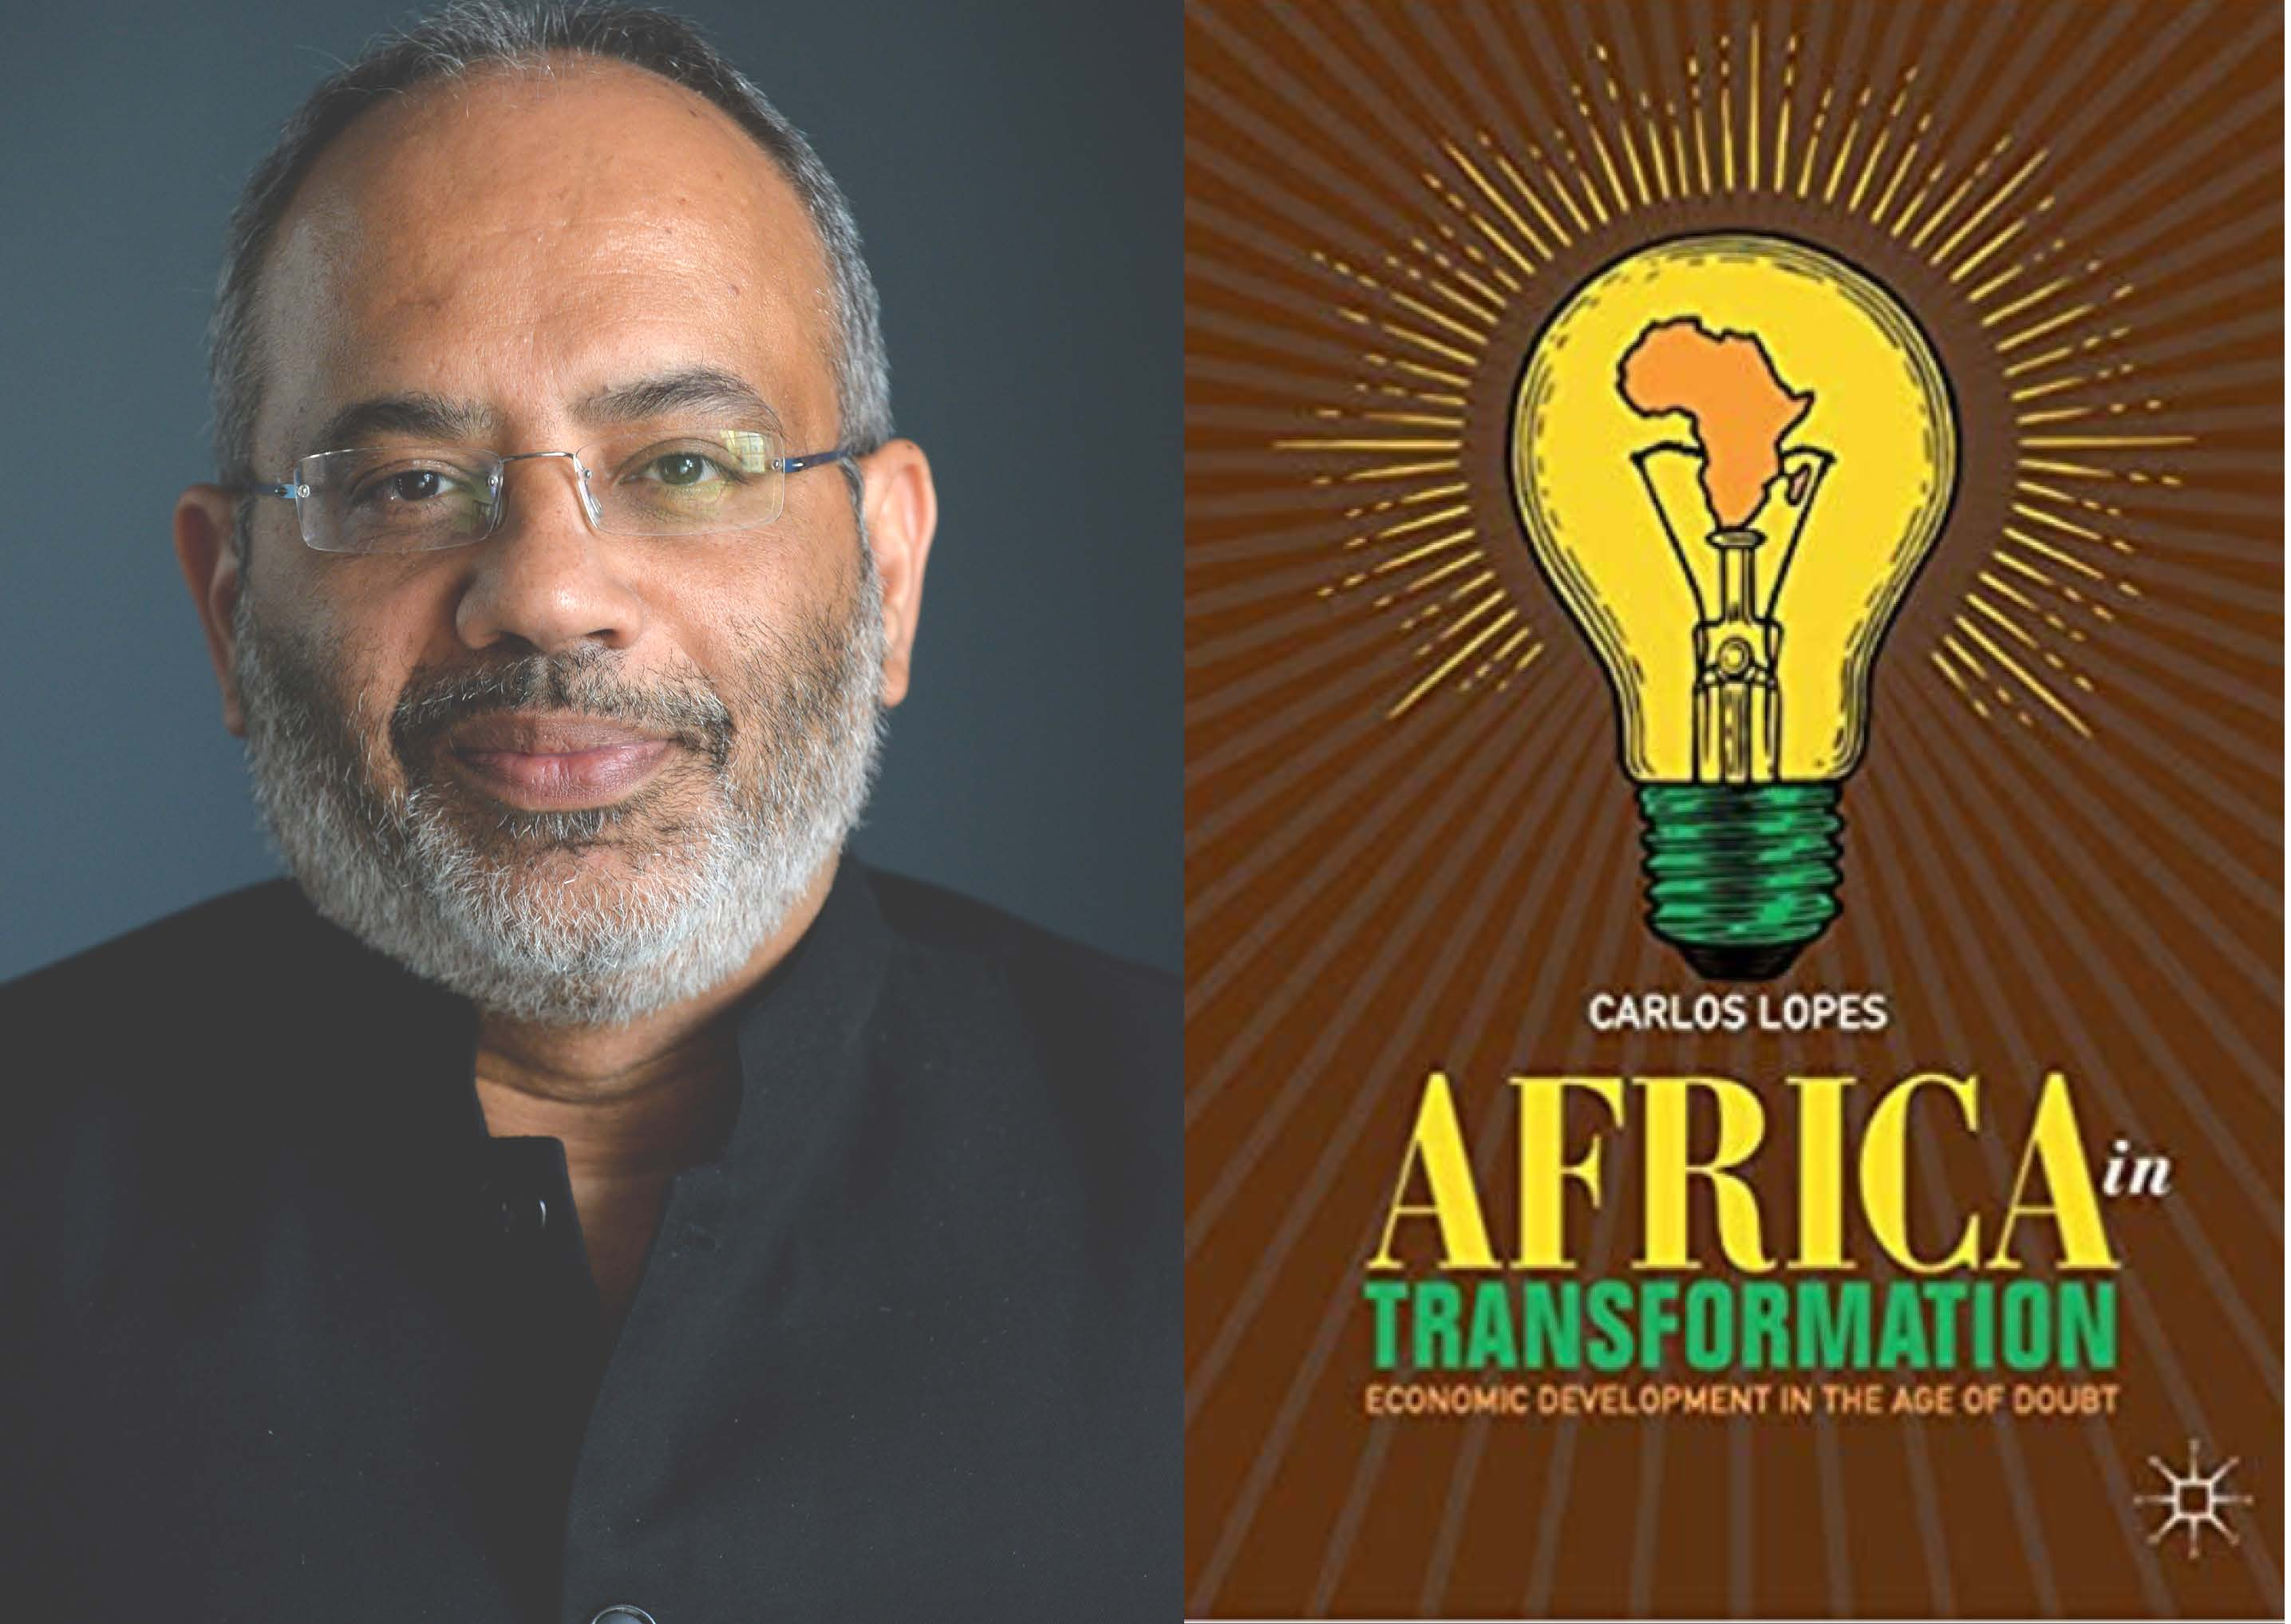 Book Review: Africa in Transformation